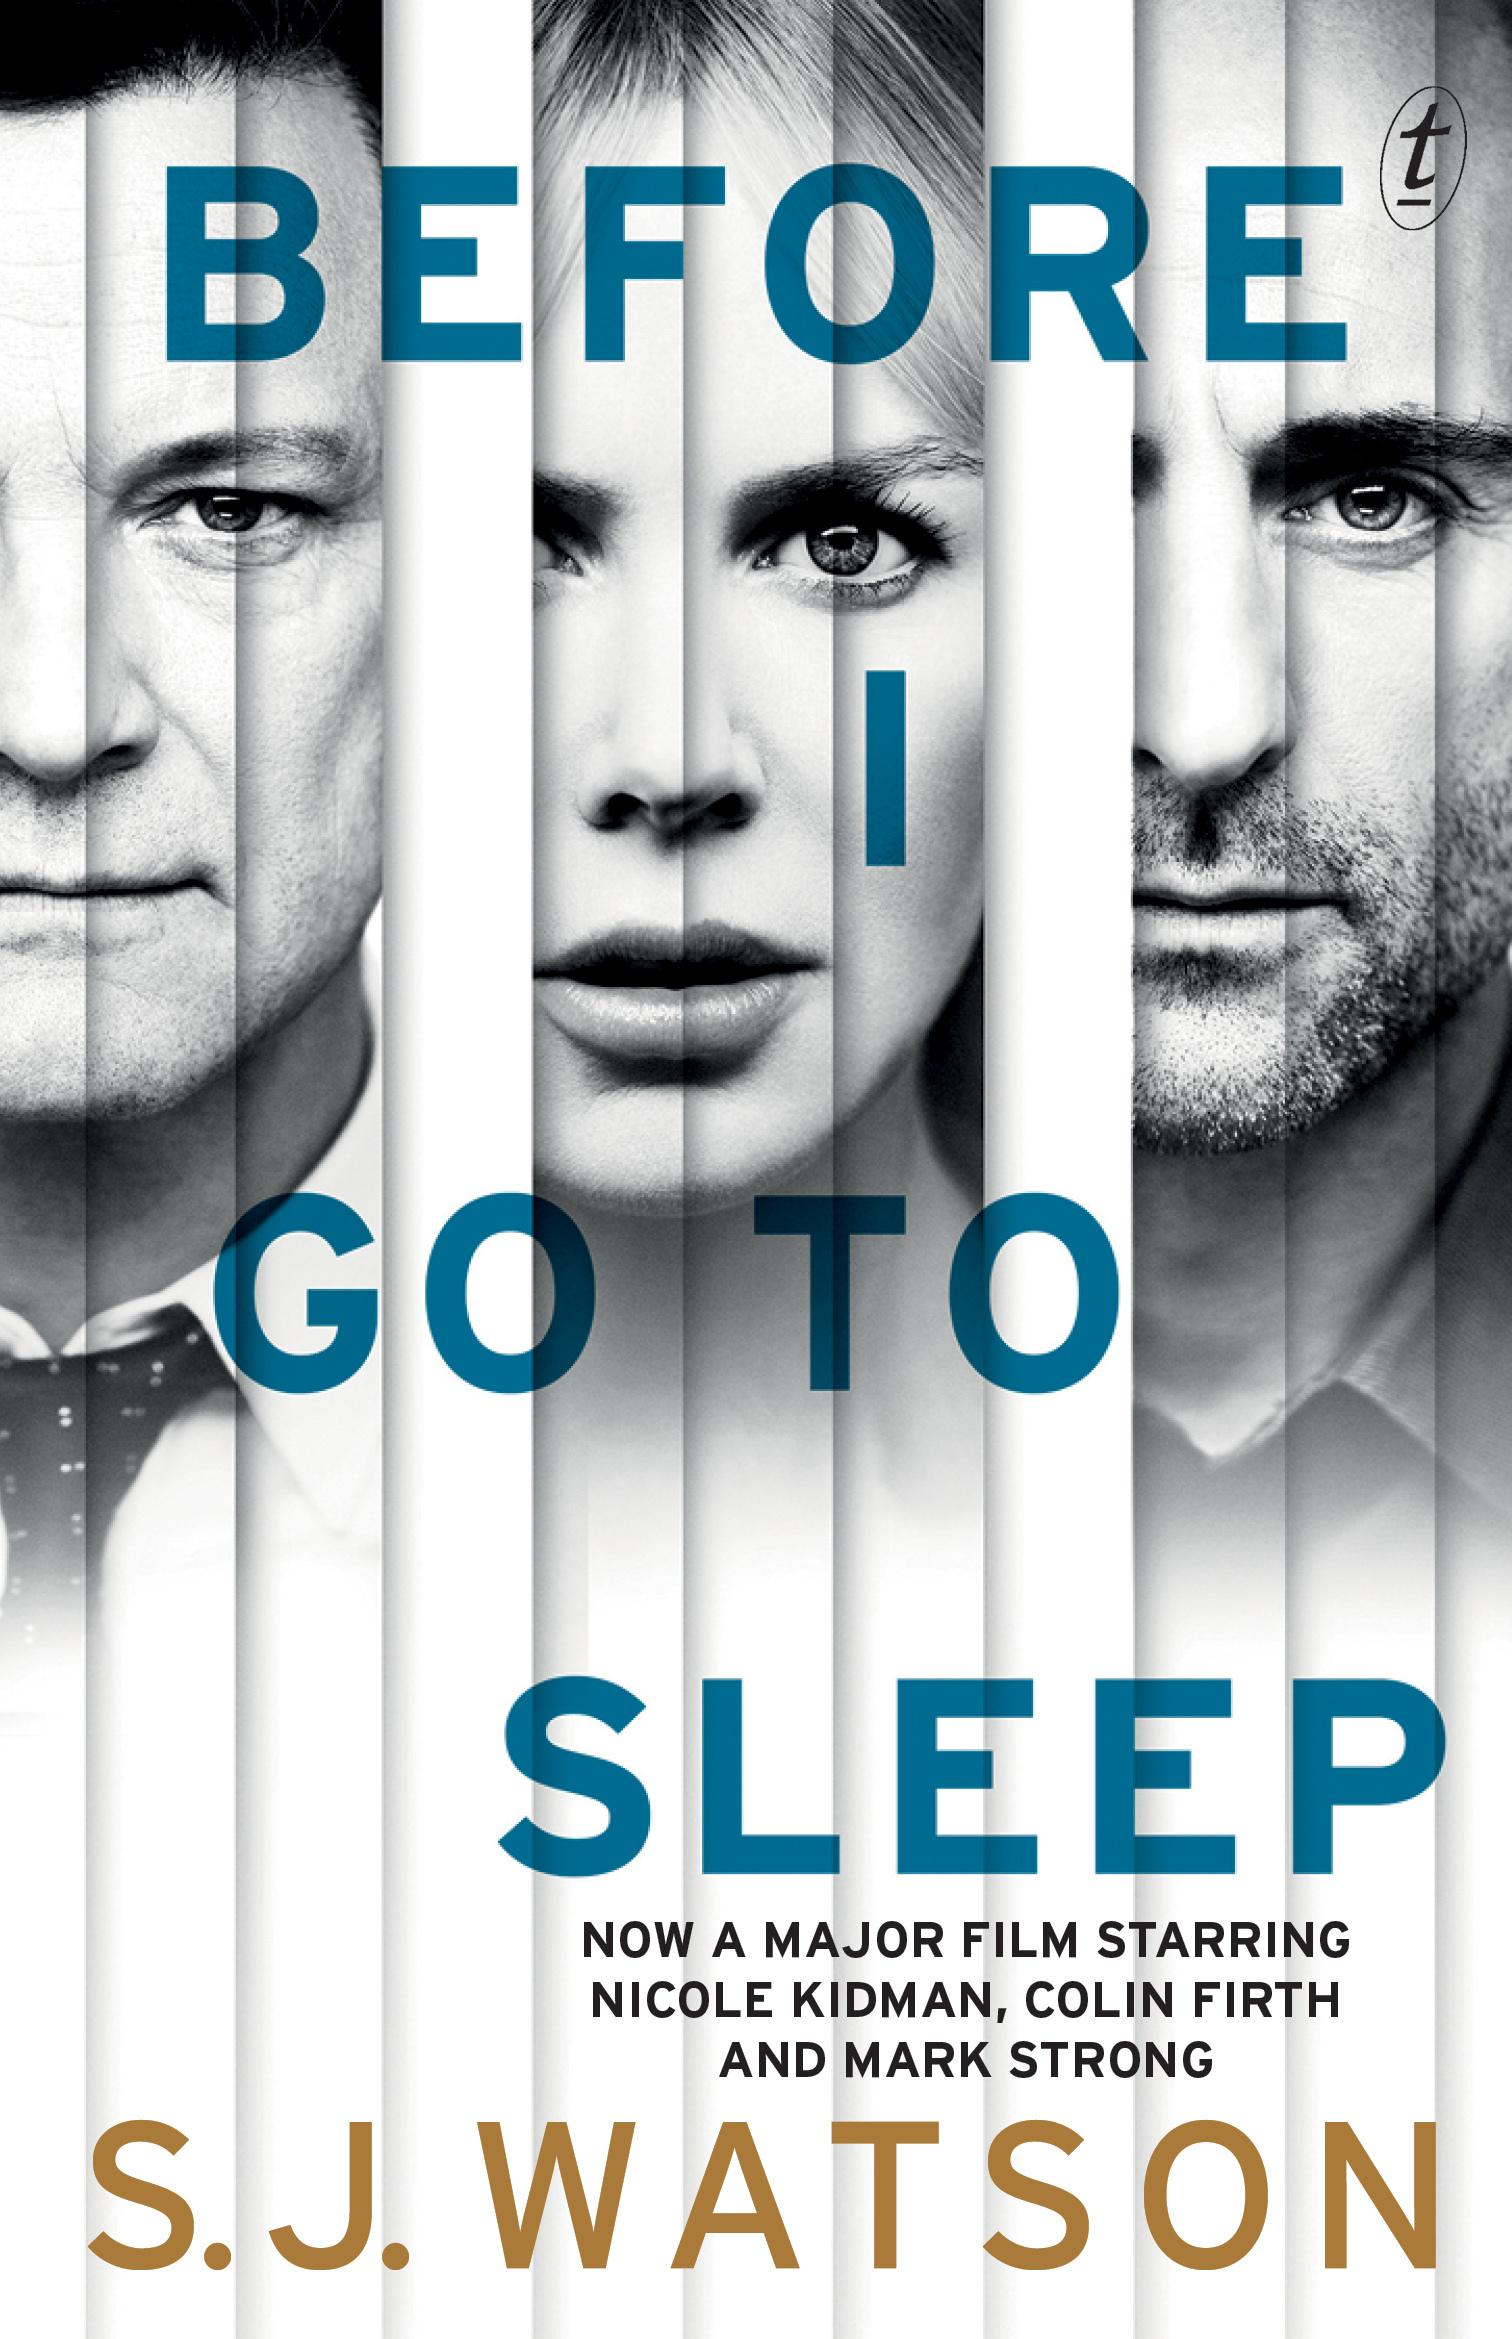 Before I Go To Sleep (Film Tie-In)